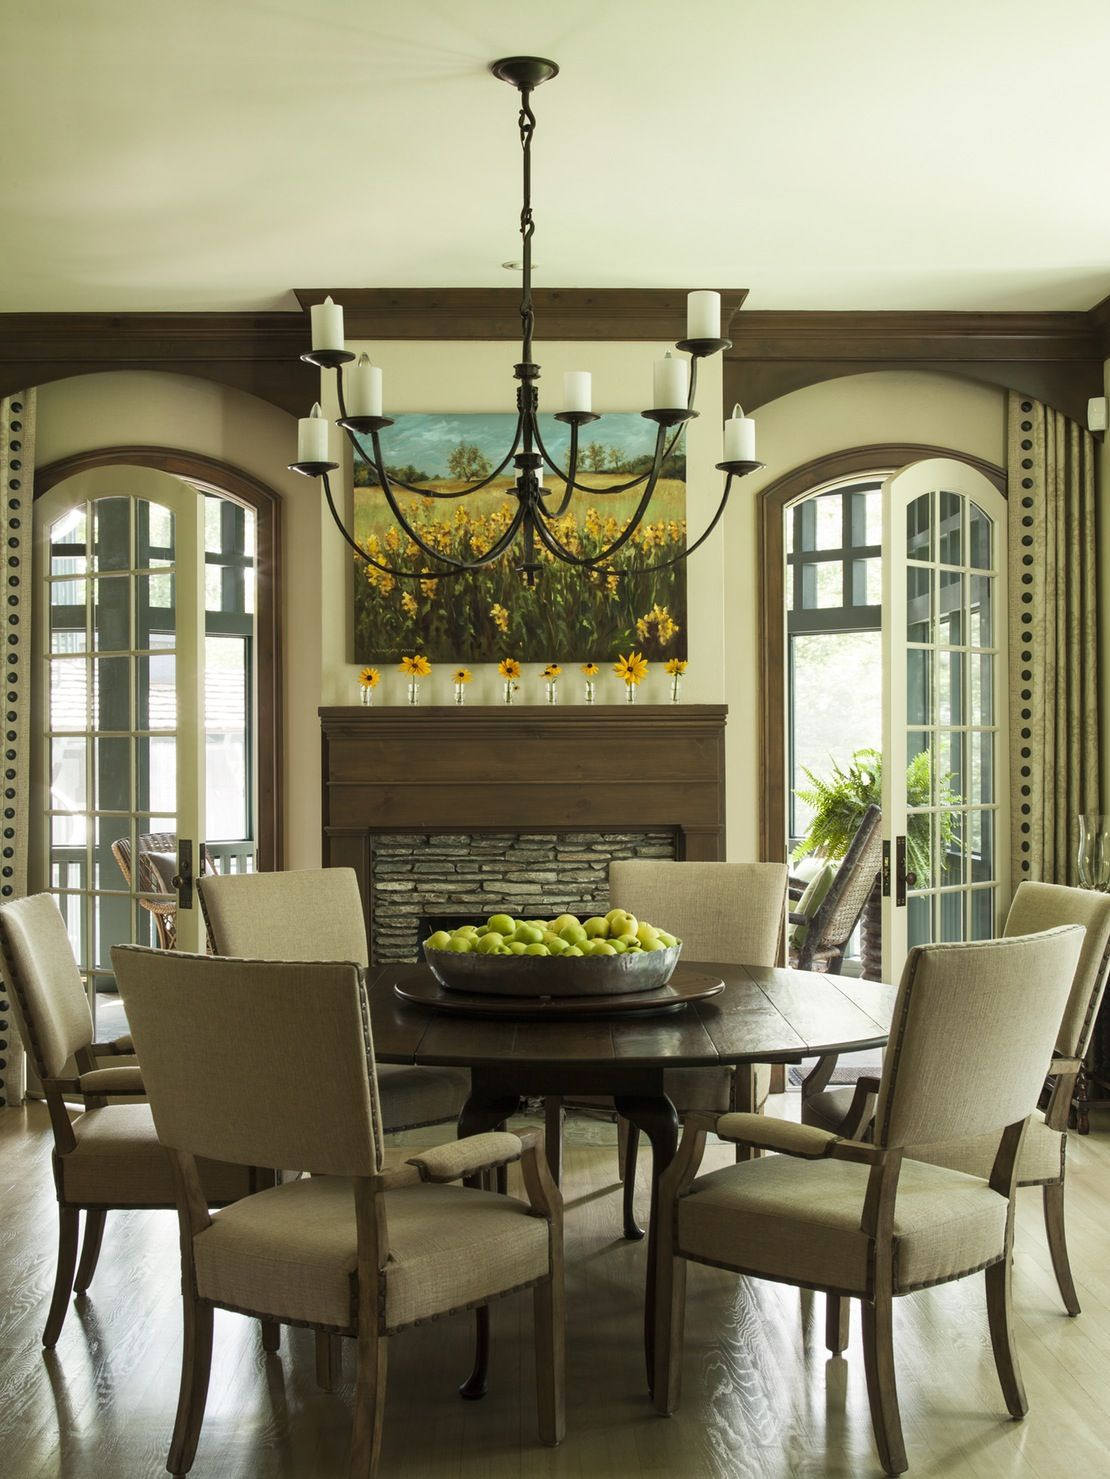 Nature inspired neutrals dominate the casual dining room